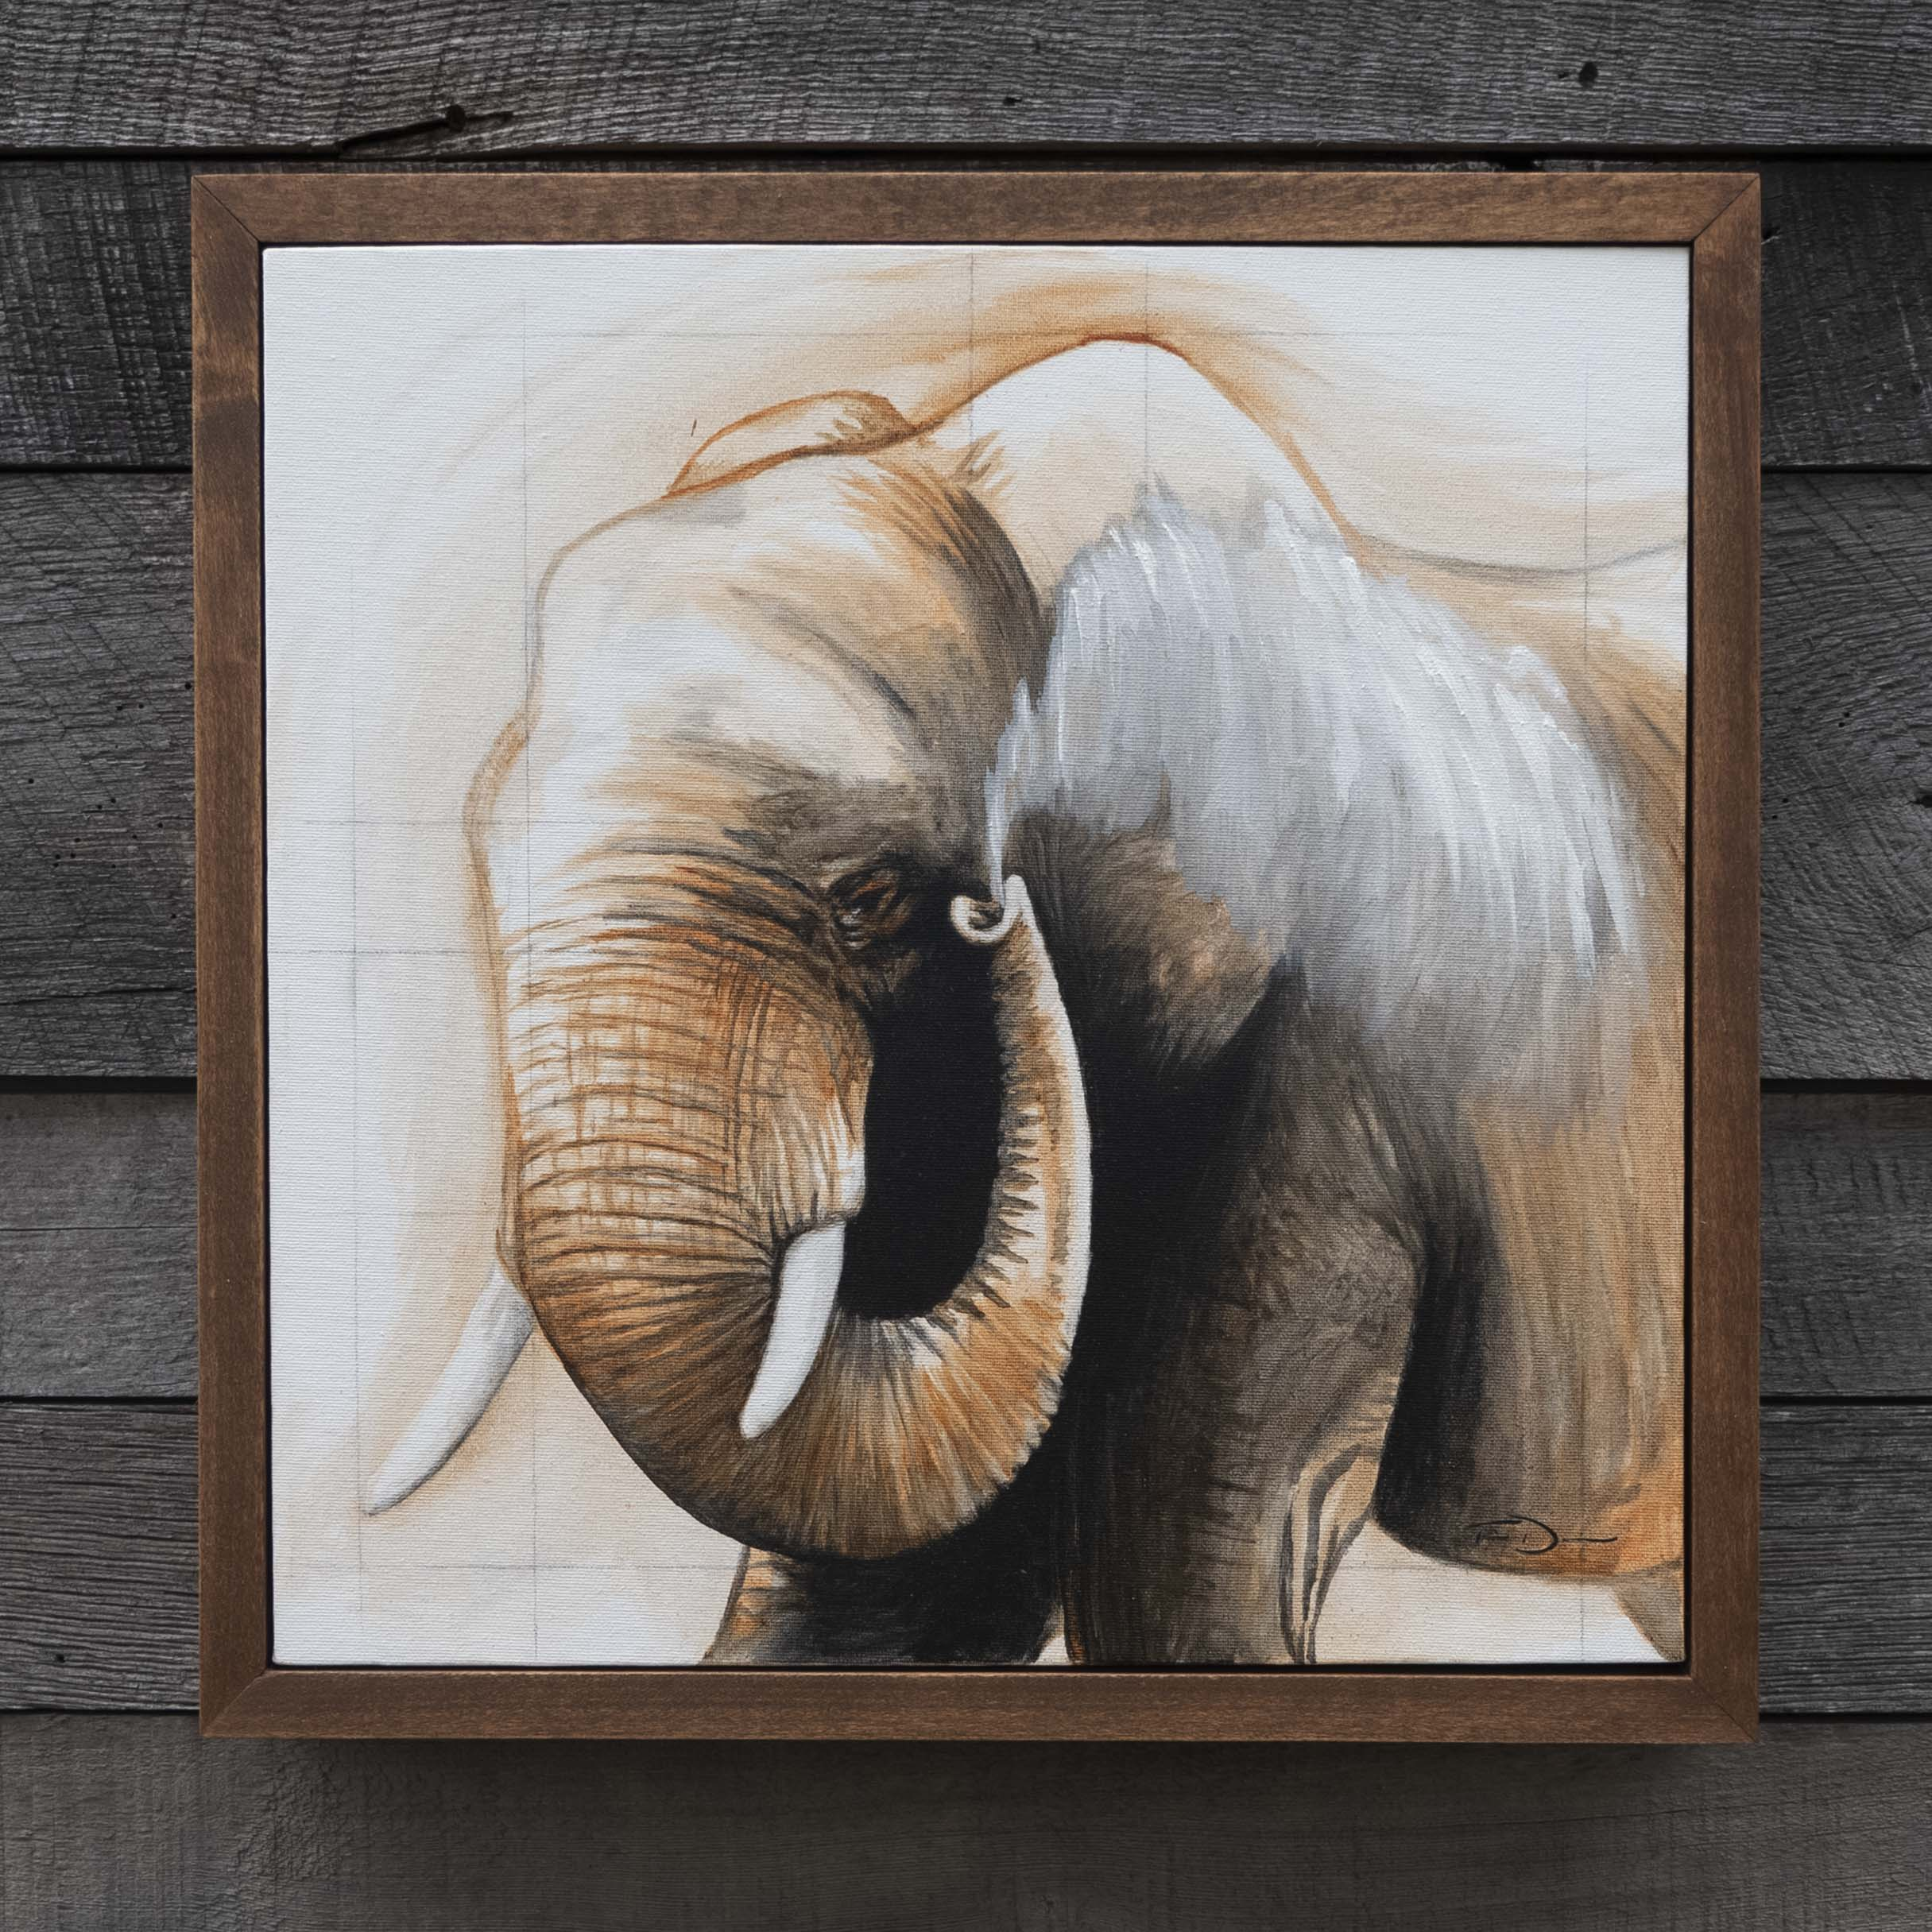 Dust Bath - Original oil painting by wildlife artist Timothy Davison of the Davison Art Company featuring an African elephant throwing dust on its back with its trunk. Framed in a custom hardwood floating frame. © COPYRIGHT TIMOTHY DAVISON